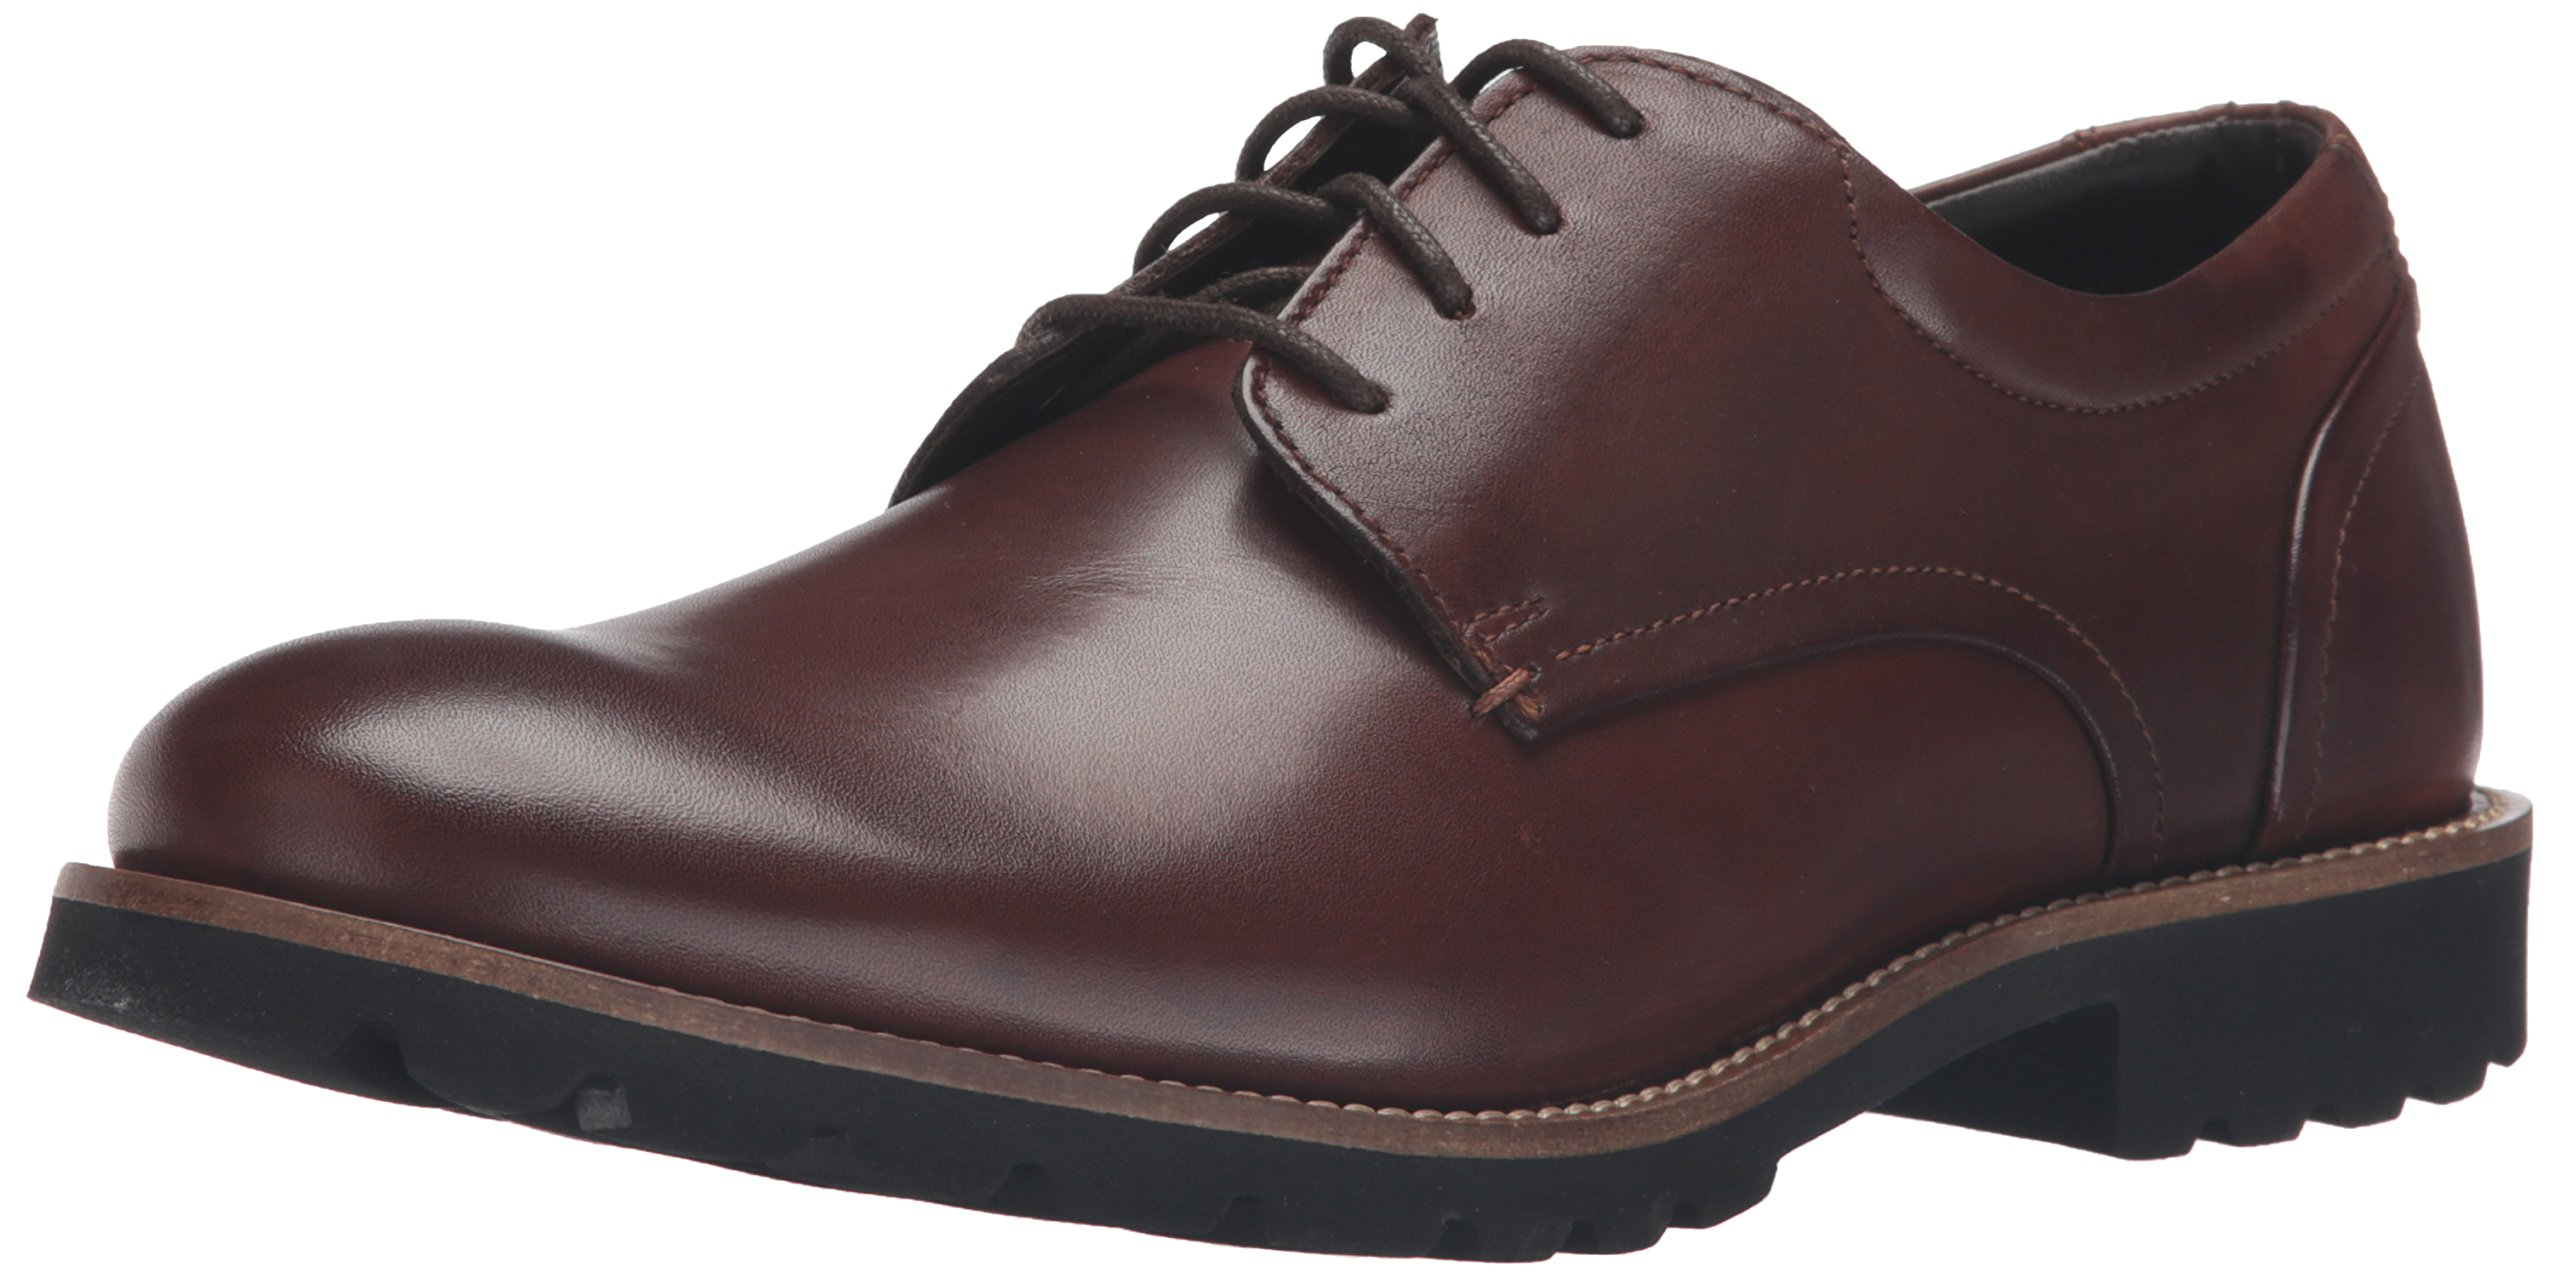 Rockport Men's Colben Oxford- Cll Brown-10.5 W by Rockport